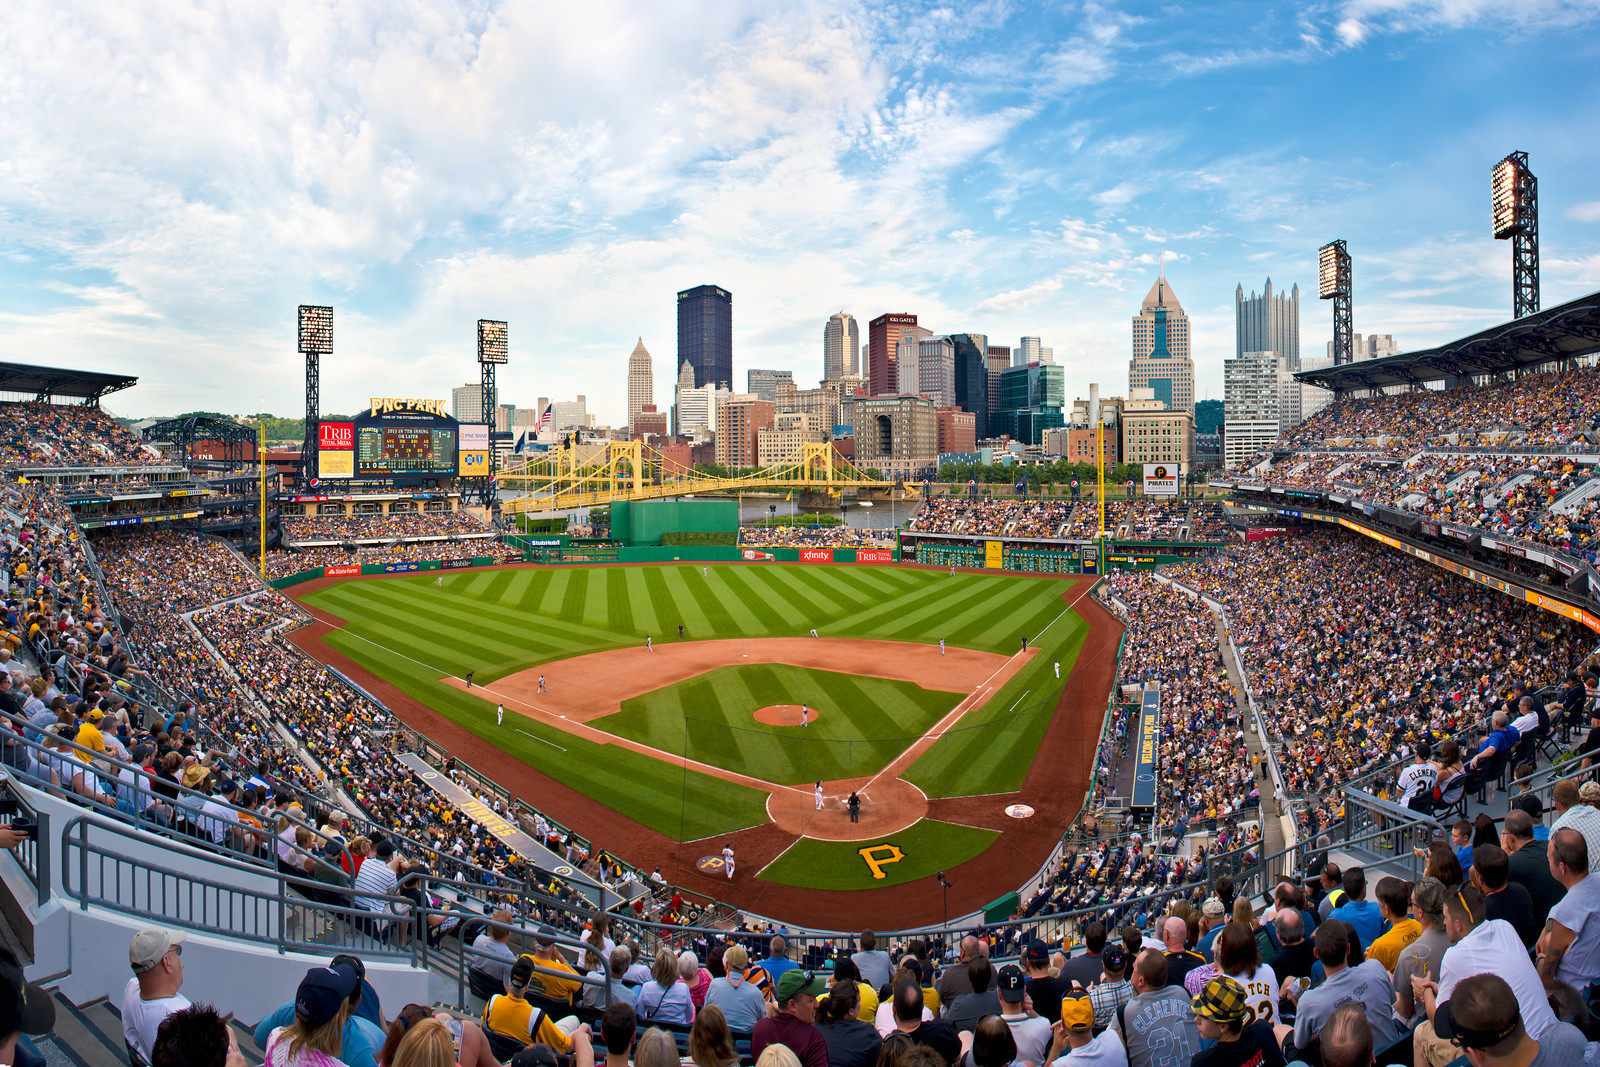 """""""McCutcheon at the Bat"""" - Pittsburgh, PNC Park   Recommended Print sizes*:  4x6  